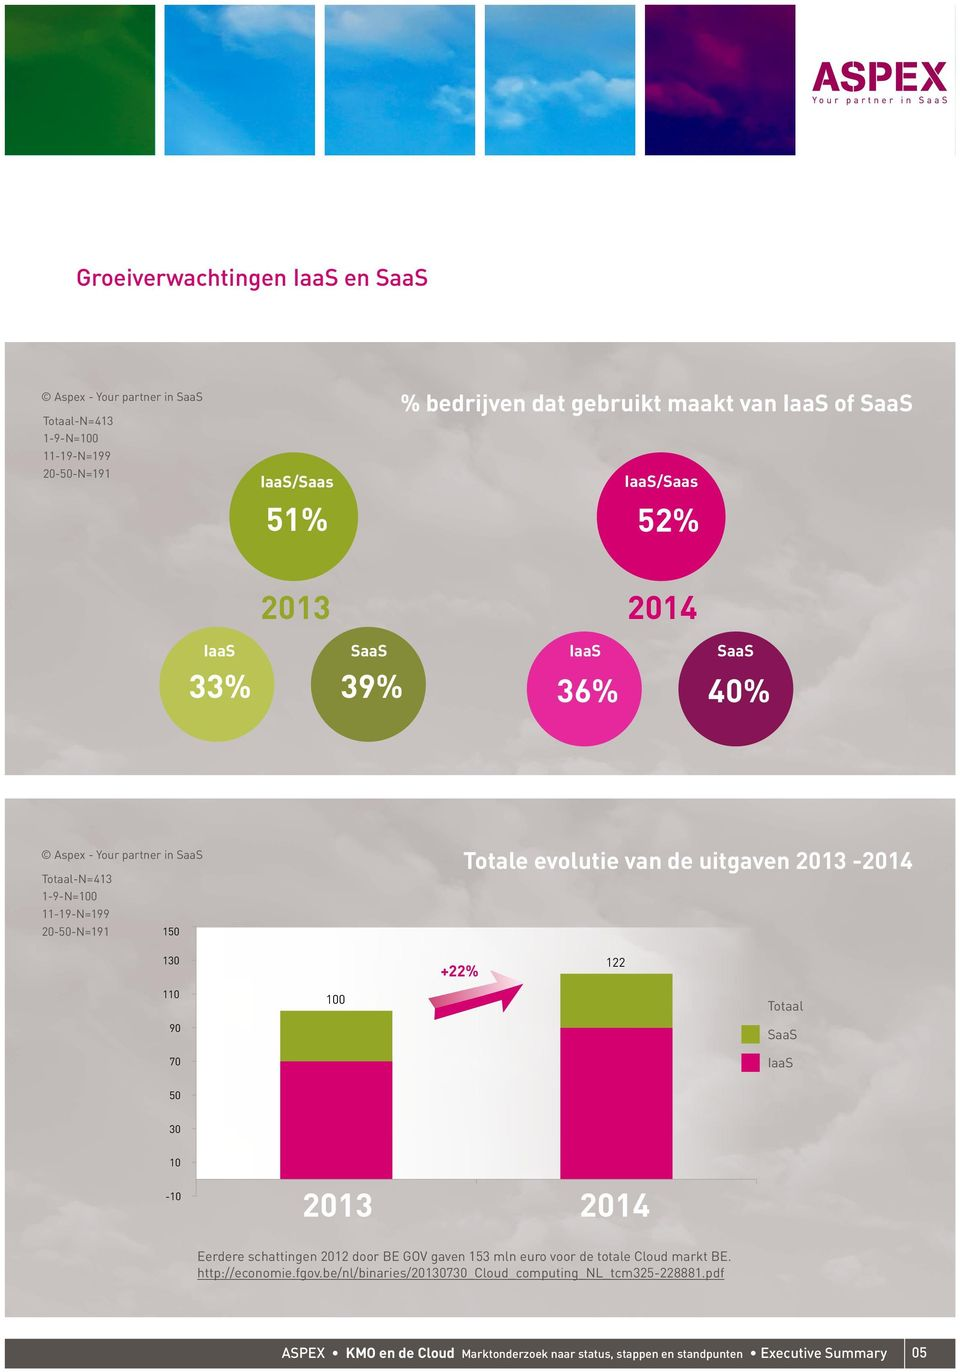 50 30 10-10 2013 2014 Eerdere schattingen 2012 door BE GOV gaven 153 mln euro voor de totale Cloud markt BE. http://economie.fgov.